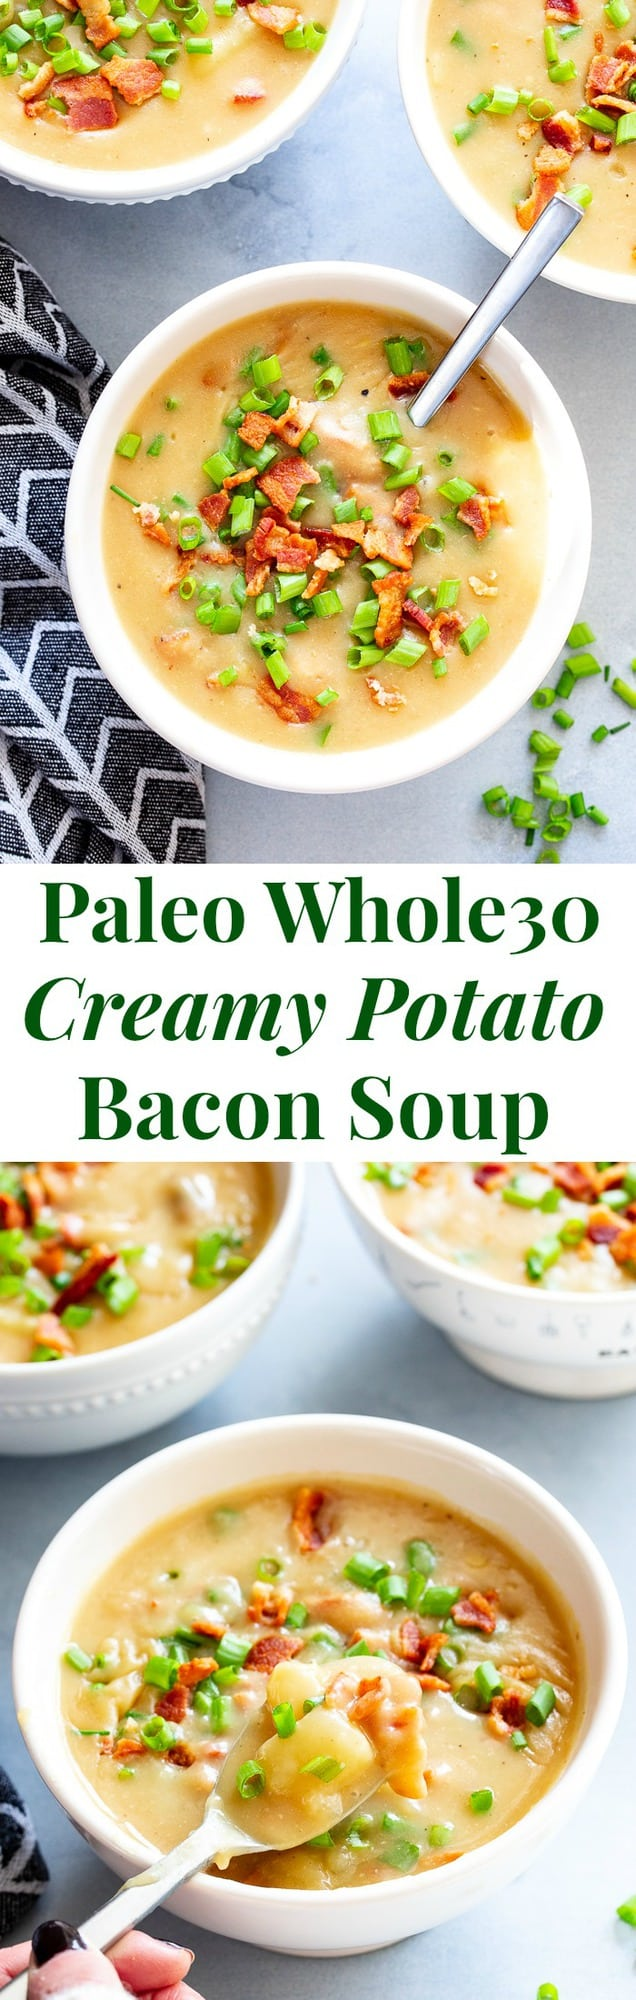 This easy and delicious creamy potato soup is loaded with flavor, bacon, and hearty chunks of potatoes too.  It's the perfect comfort food on cold winter nights!  It's dairy-free, Whole30 compliant and paleo friendly.